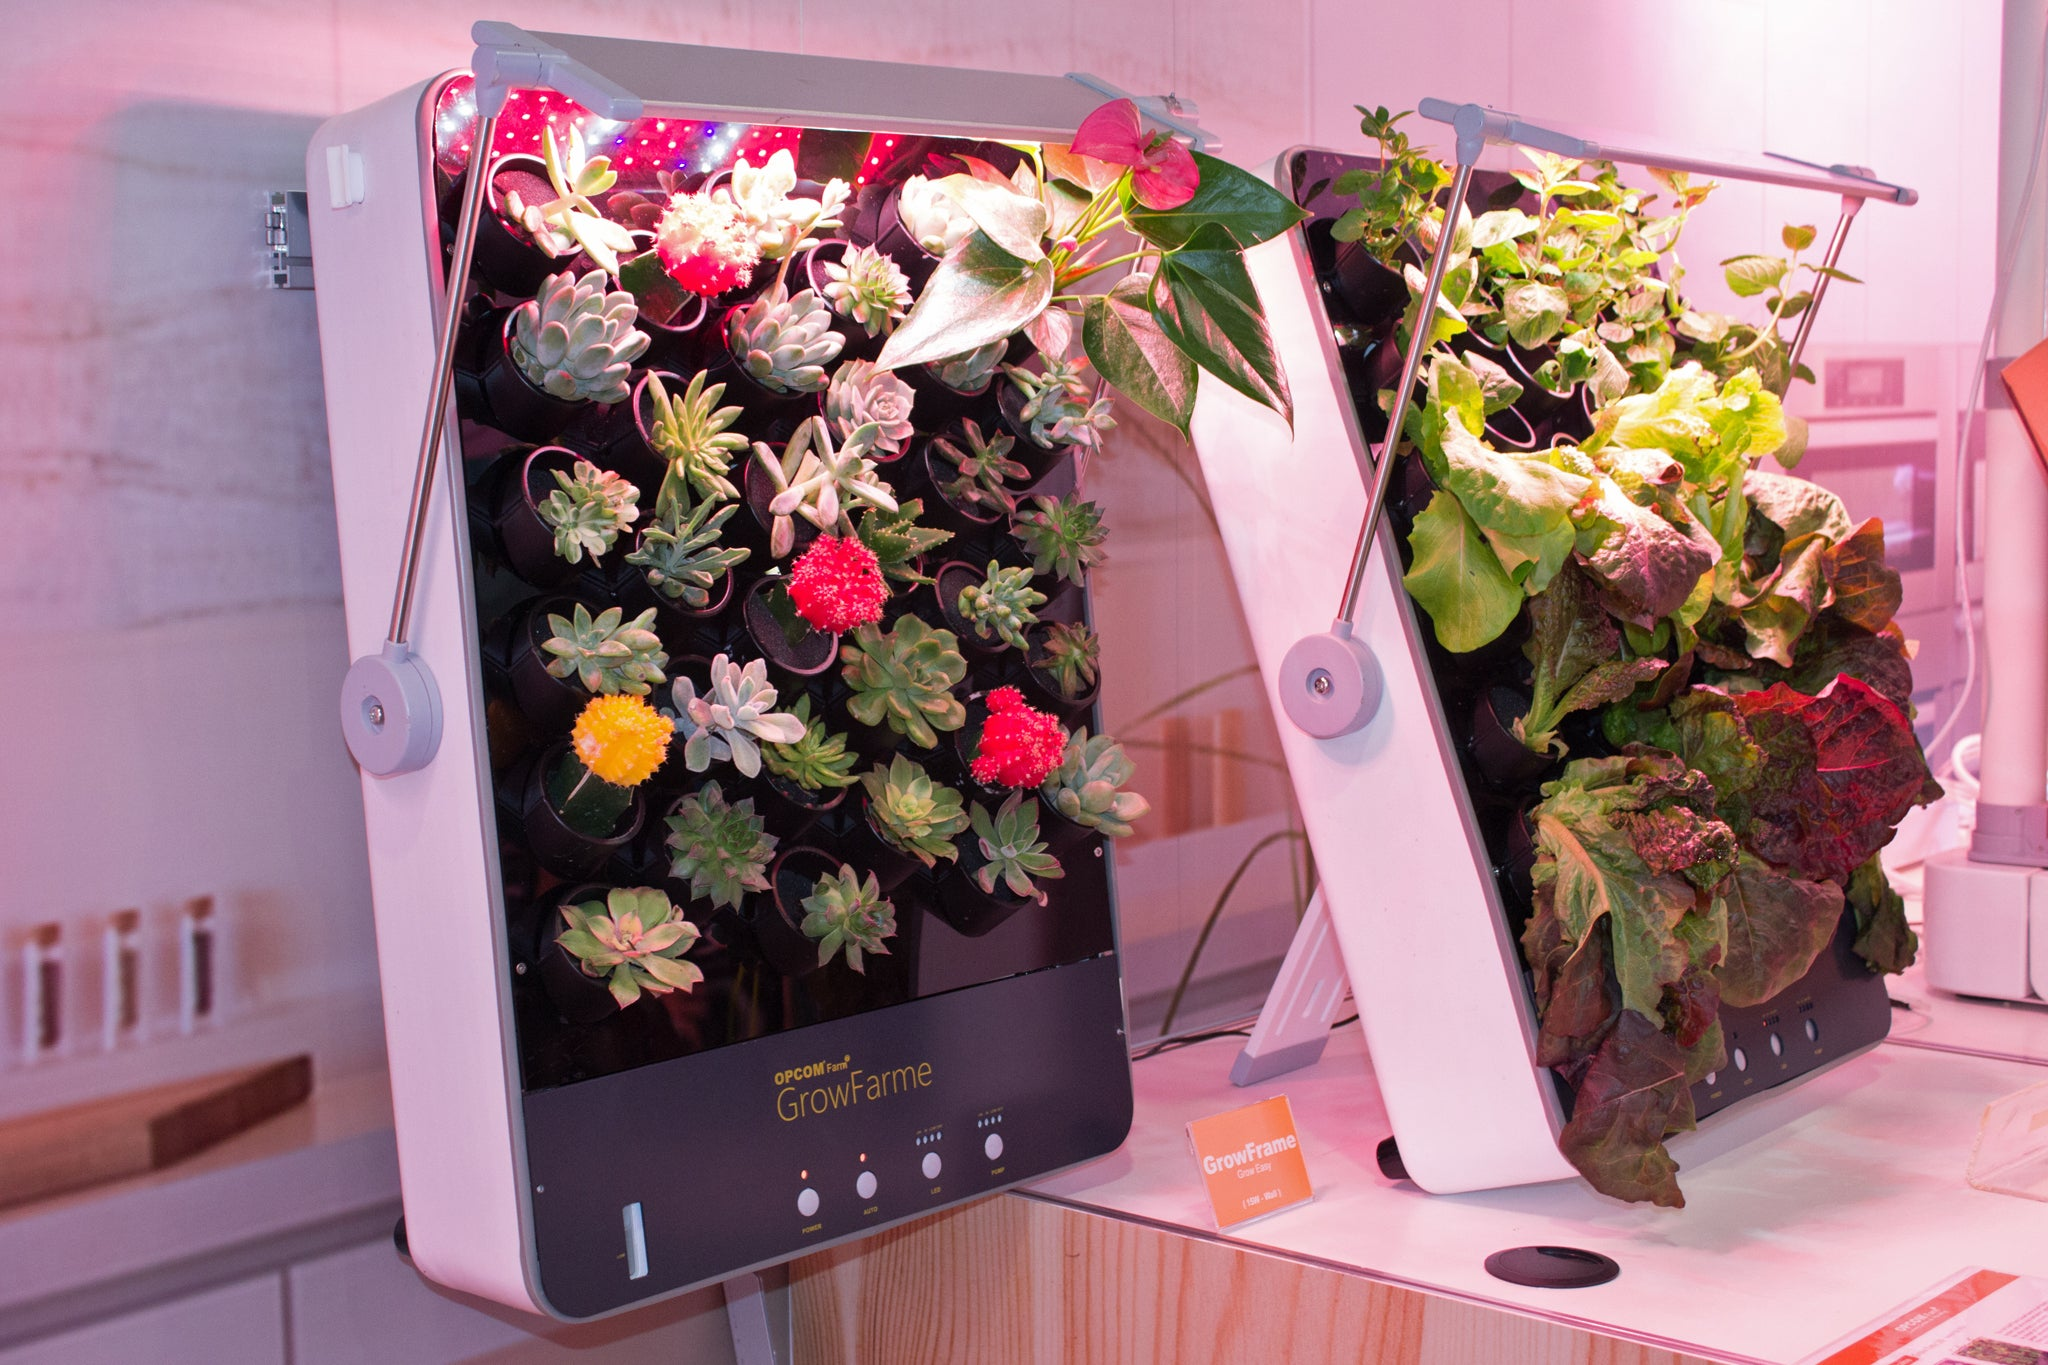 Opcom Farm's GrowBox and GrowWall let you raise vegetables indoors on indoor herb growing systems, indoor plant arrangements, indoor hydroponic plant systems, indoor garden lights, indoor fort kits, indoor hydroponic growing systems,